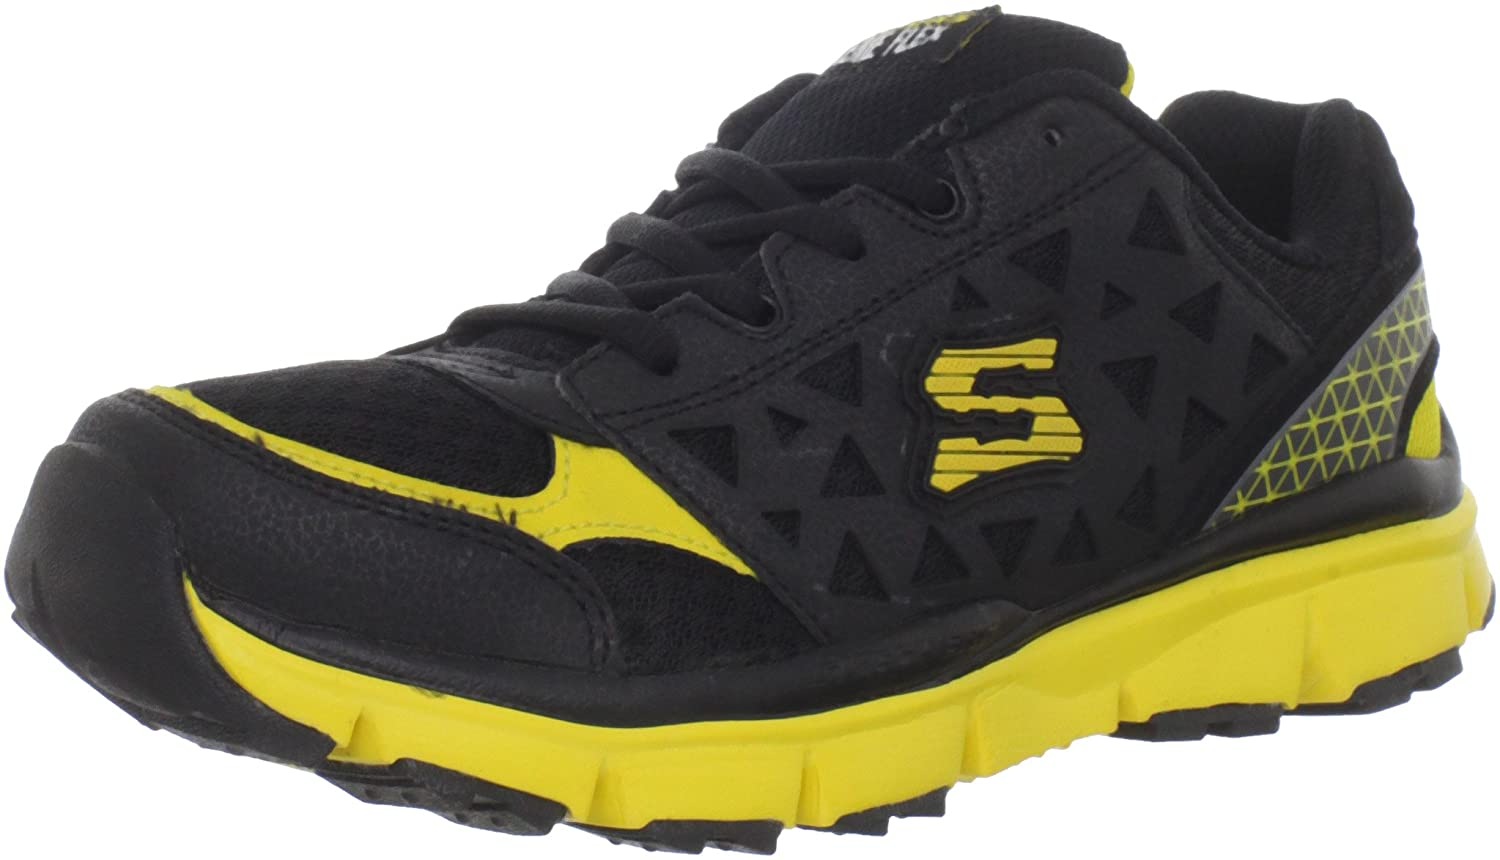 ff4999ddc62a Skechers Kids Extreme Flex - Exempt Sneaker (Little Kid Big Kid)  Buy  Online at Low Prices in India - Amazon.in